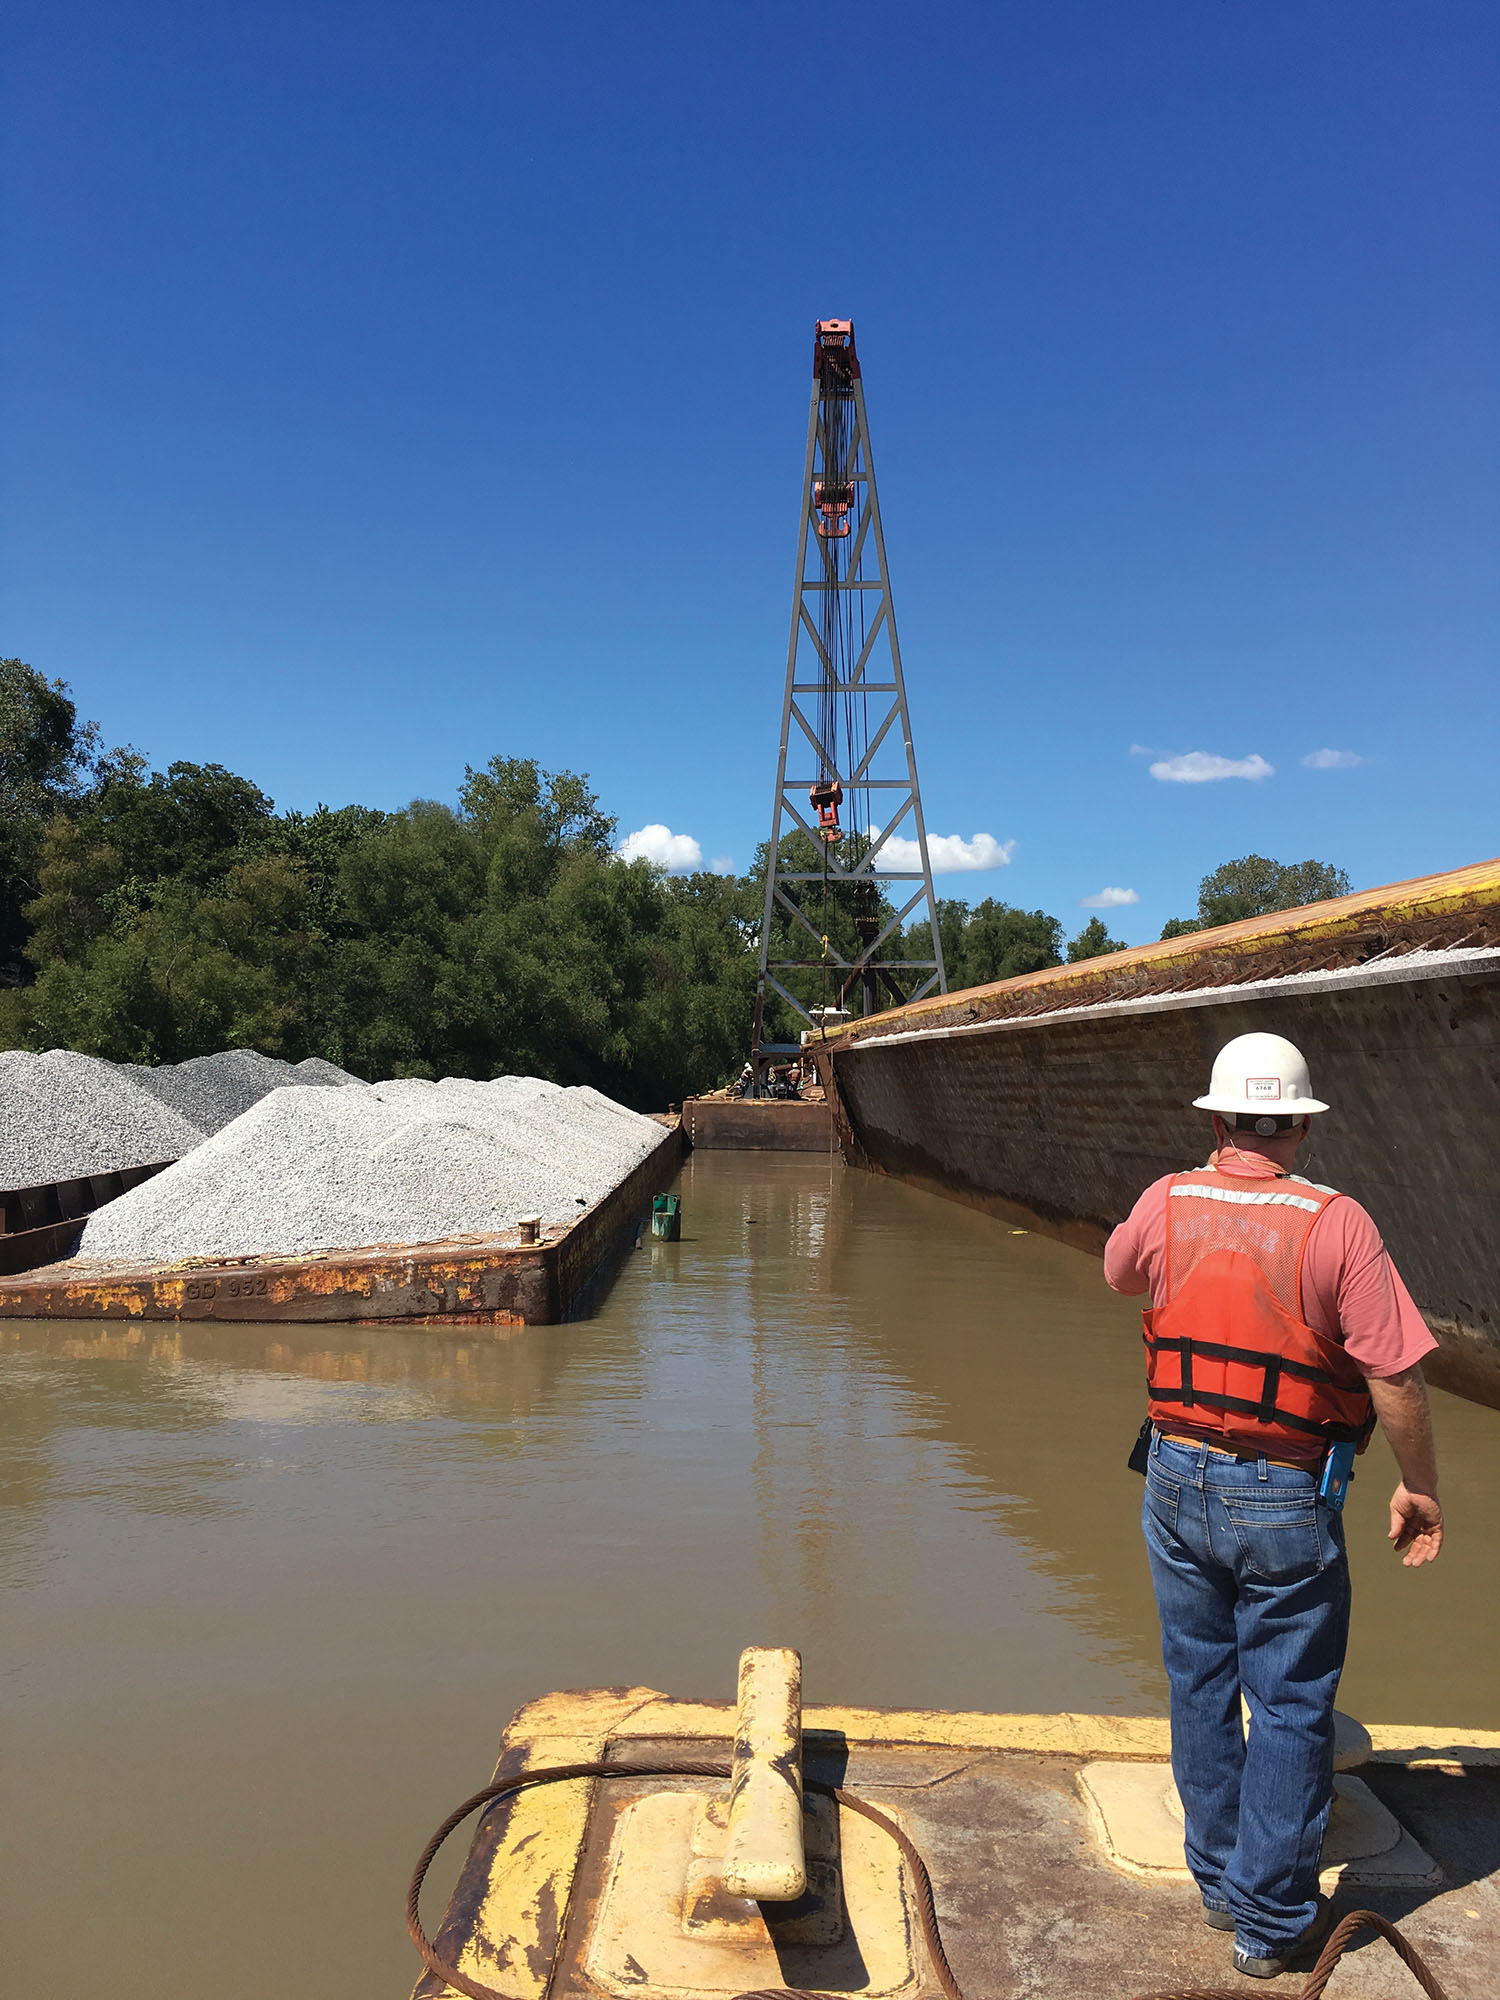 Big River Shipbuilding dispatched a pair of barge-mounted A-frame cranes to the site and successfully flipped the barge and pumped water from its holds on September 16. (Photo courtesy of Big River Shipbuilding Inc.)